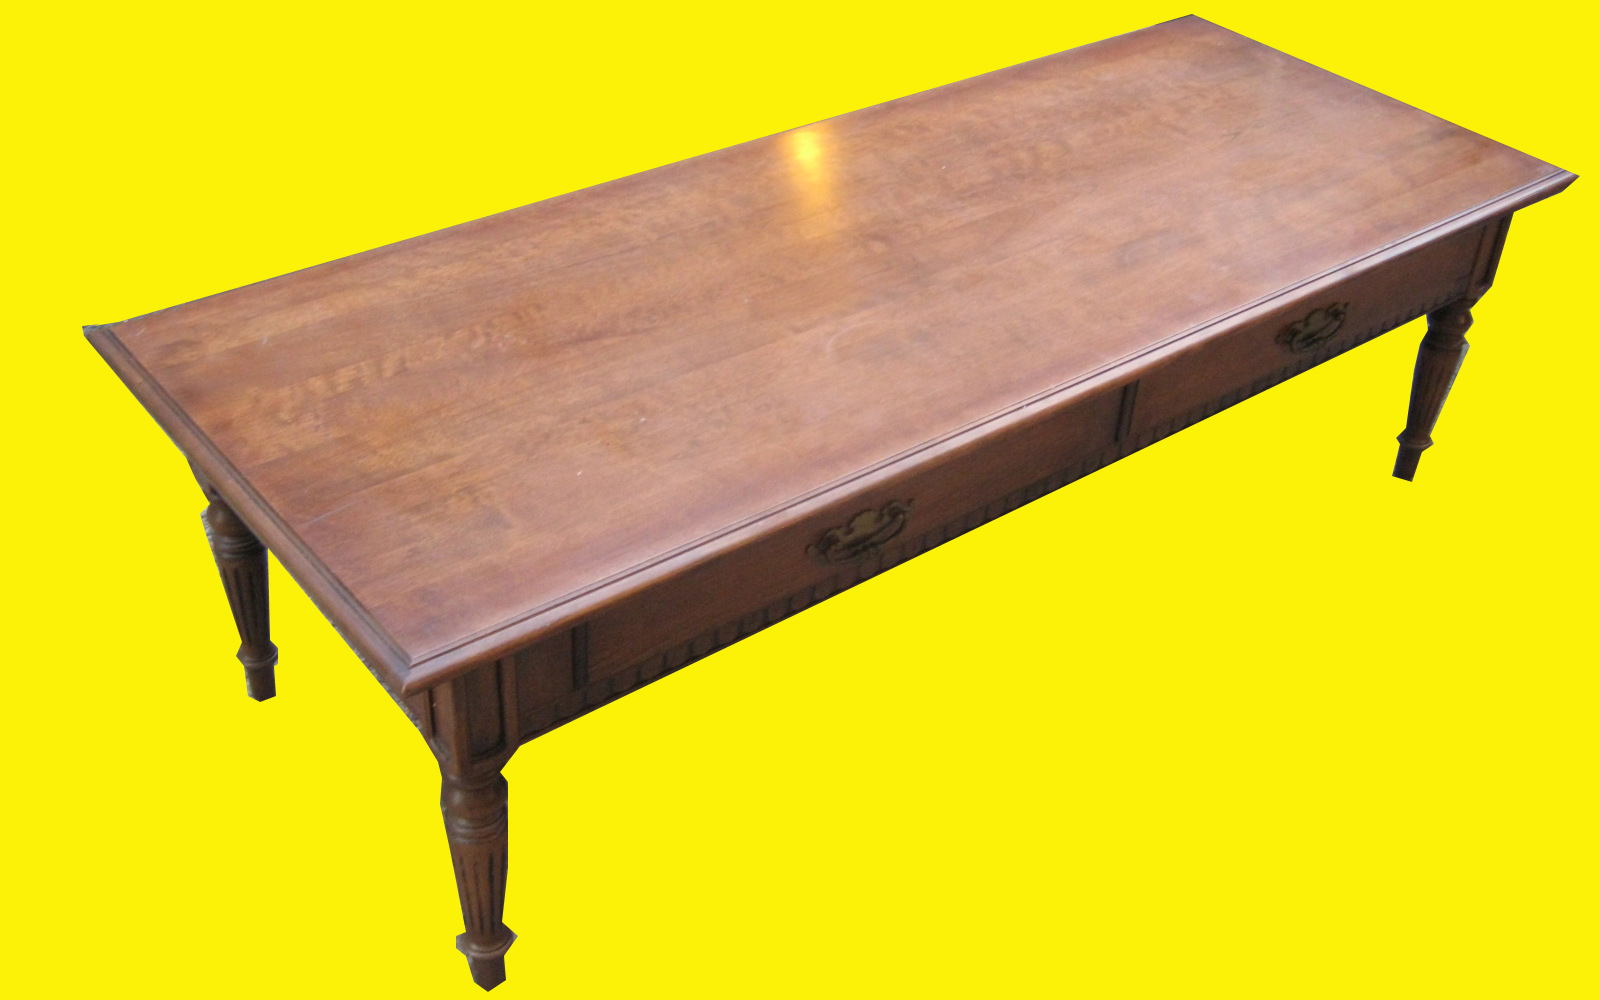 Uhuru Furniture Collectibles Ethan Allen Coffee Table Sold